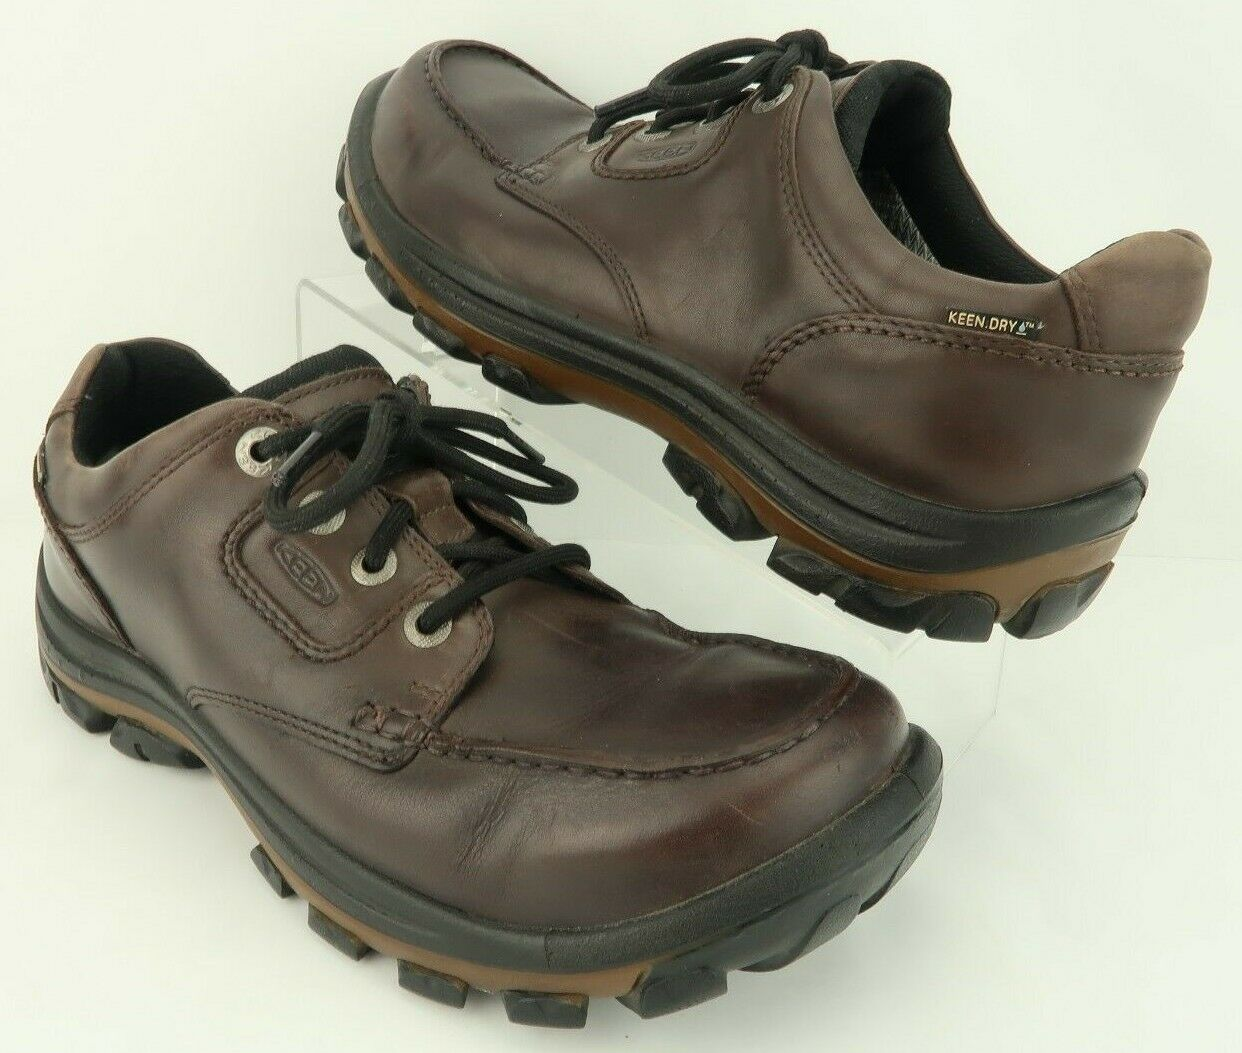 KEEN Dry NOPO Waterproof Brown Leather Lace-Up Hiking Trail shoes Men's US 10